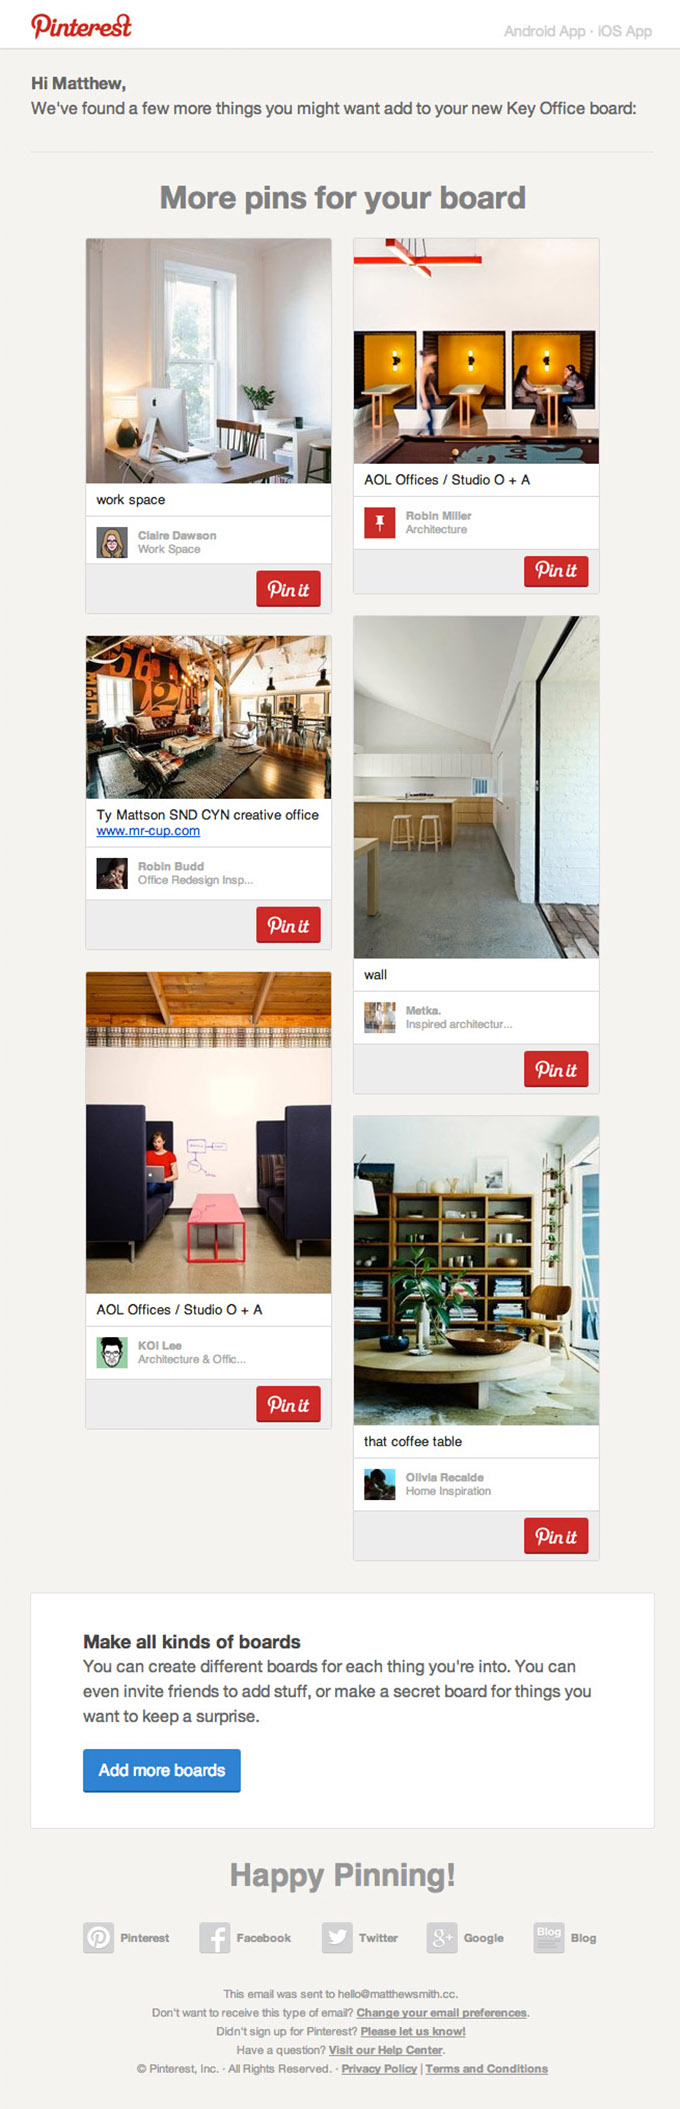 Email Newsletter Design from Pinterest | Really Good Emails